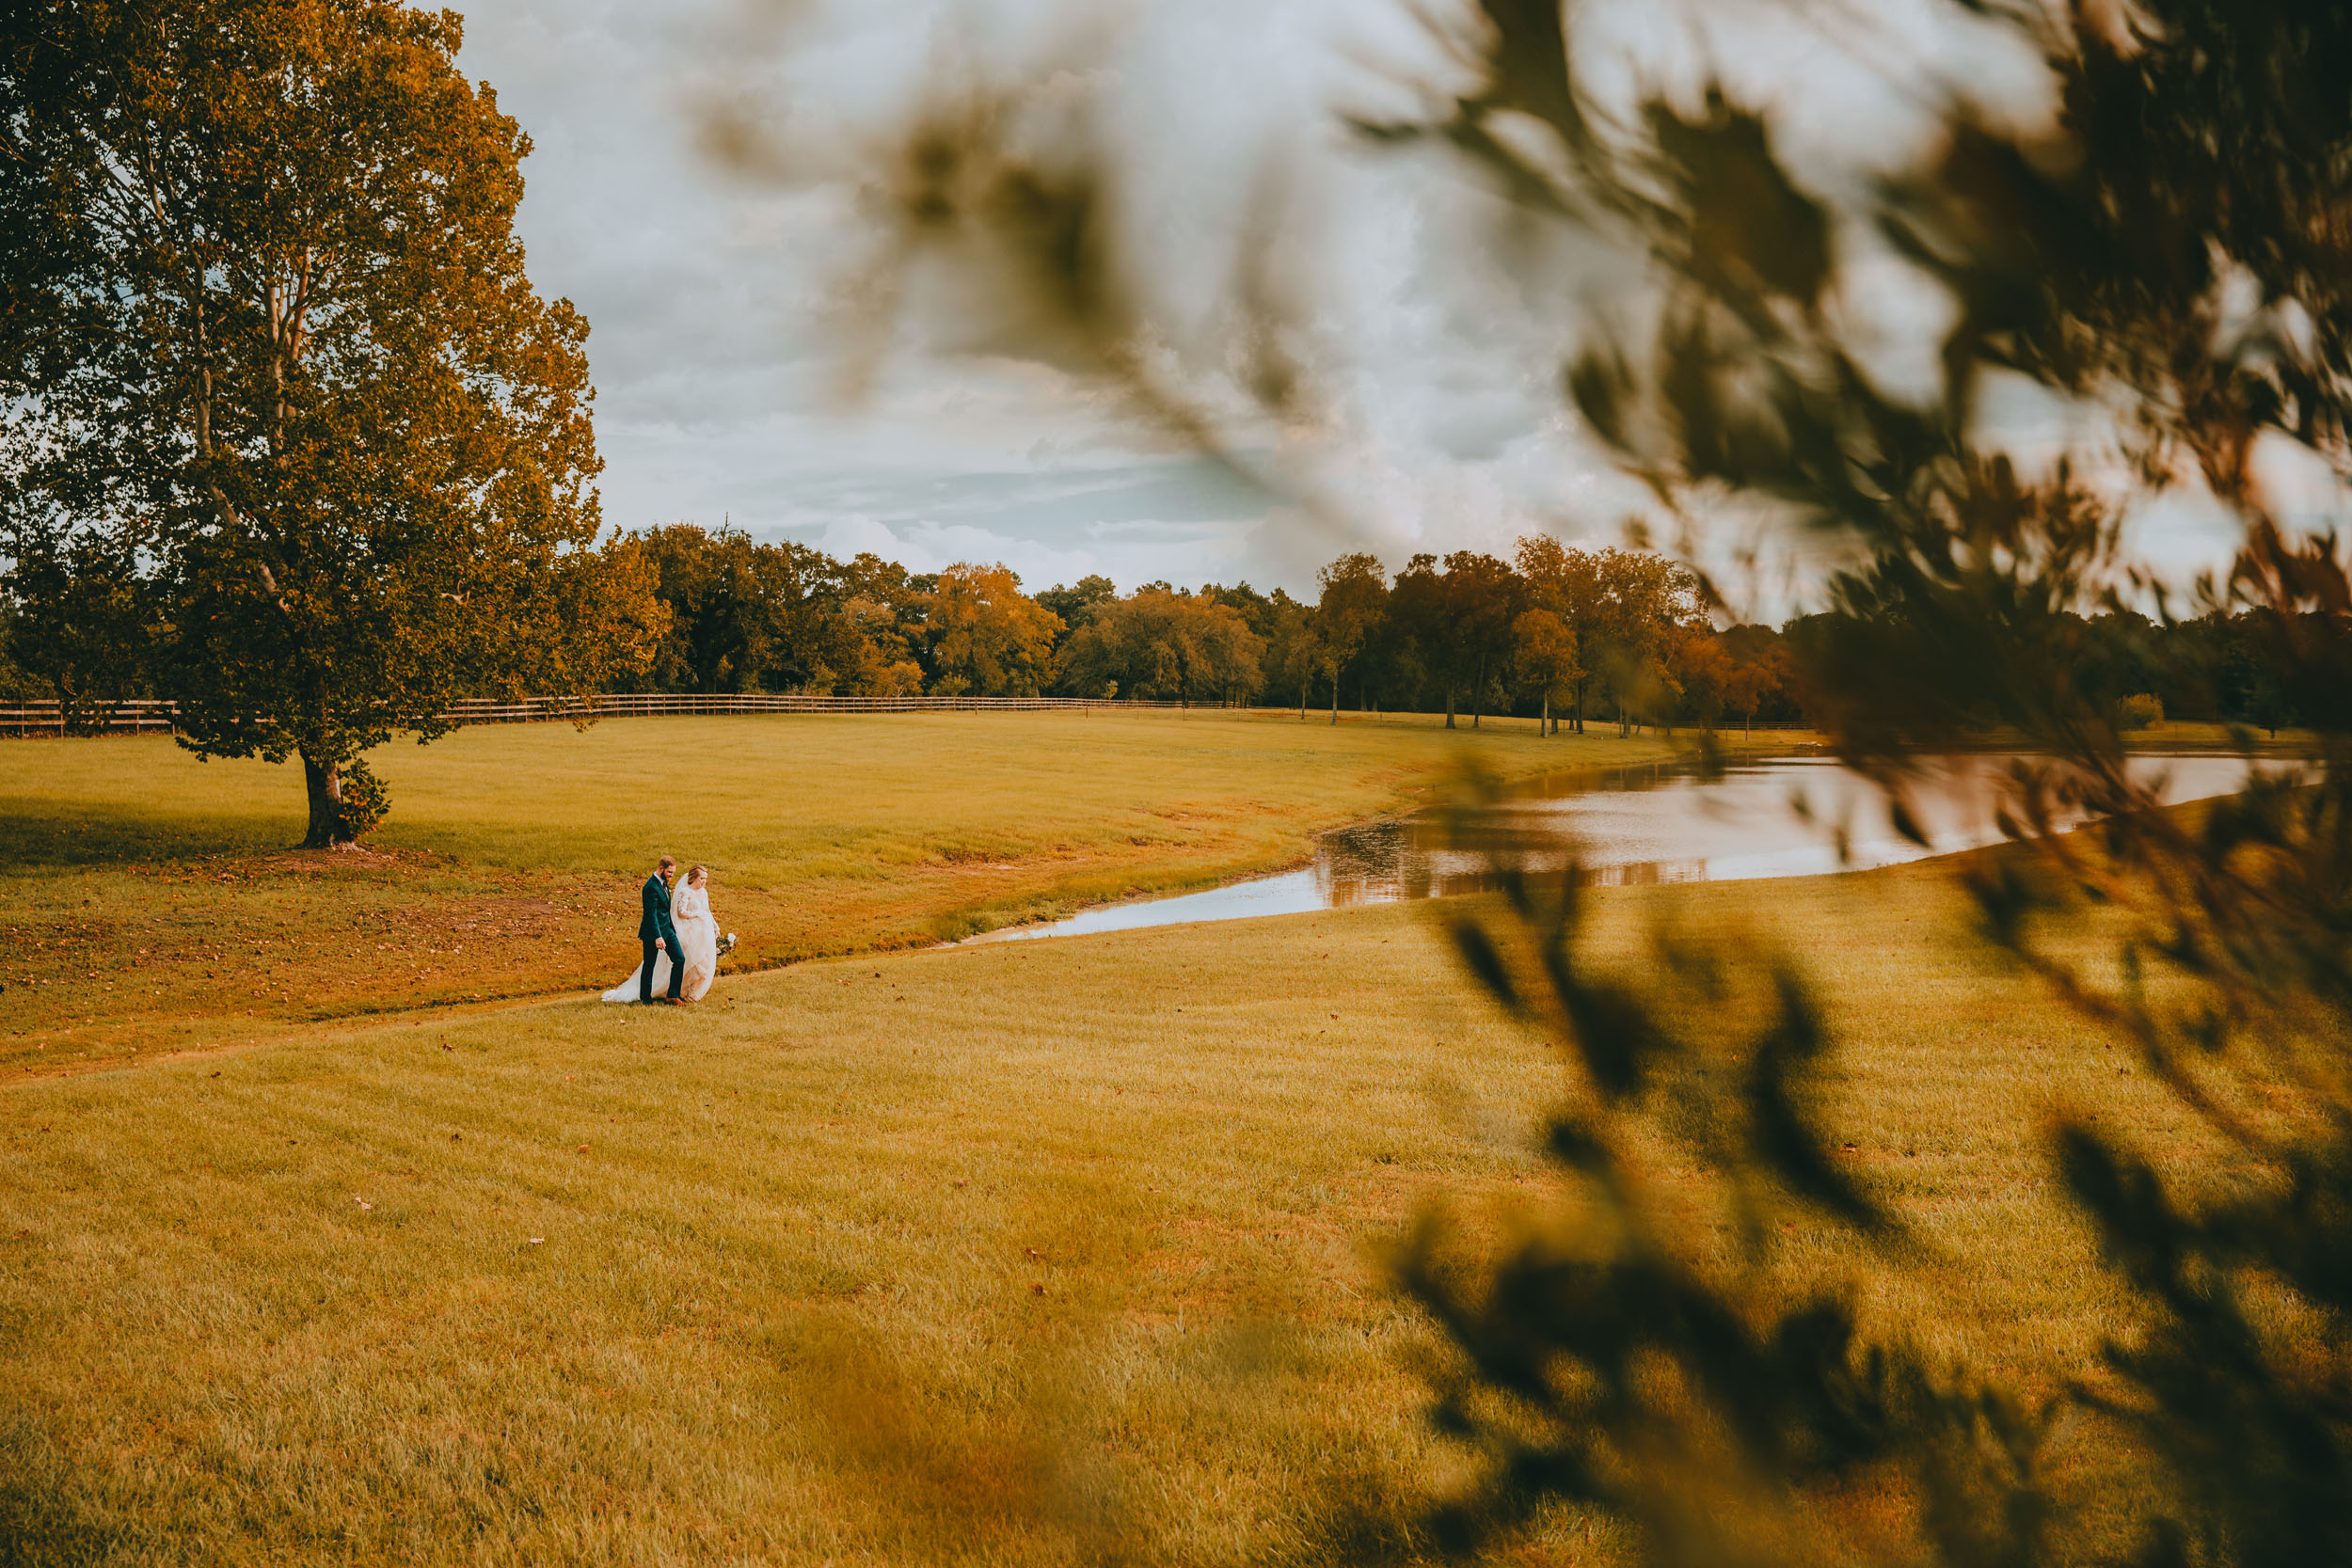 Weddings - modern photography for the sophisticated bride and groom